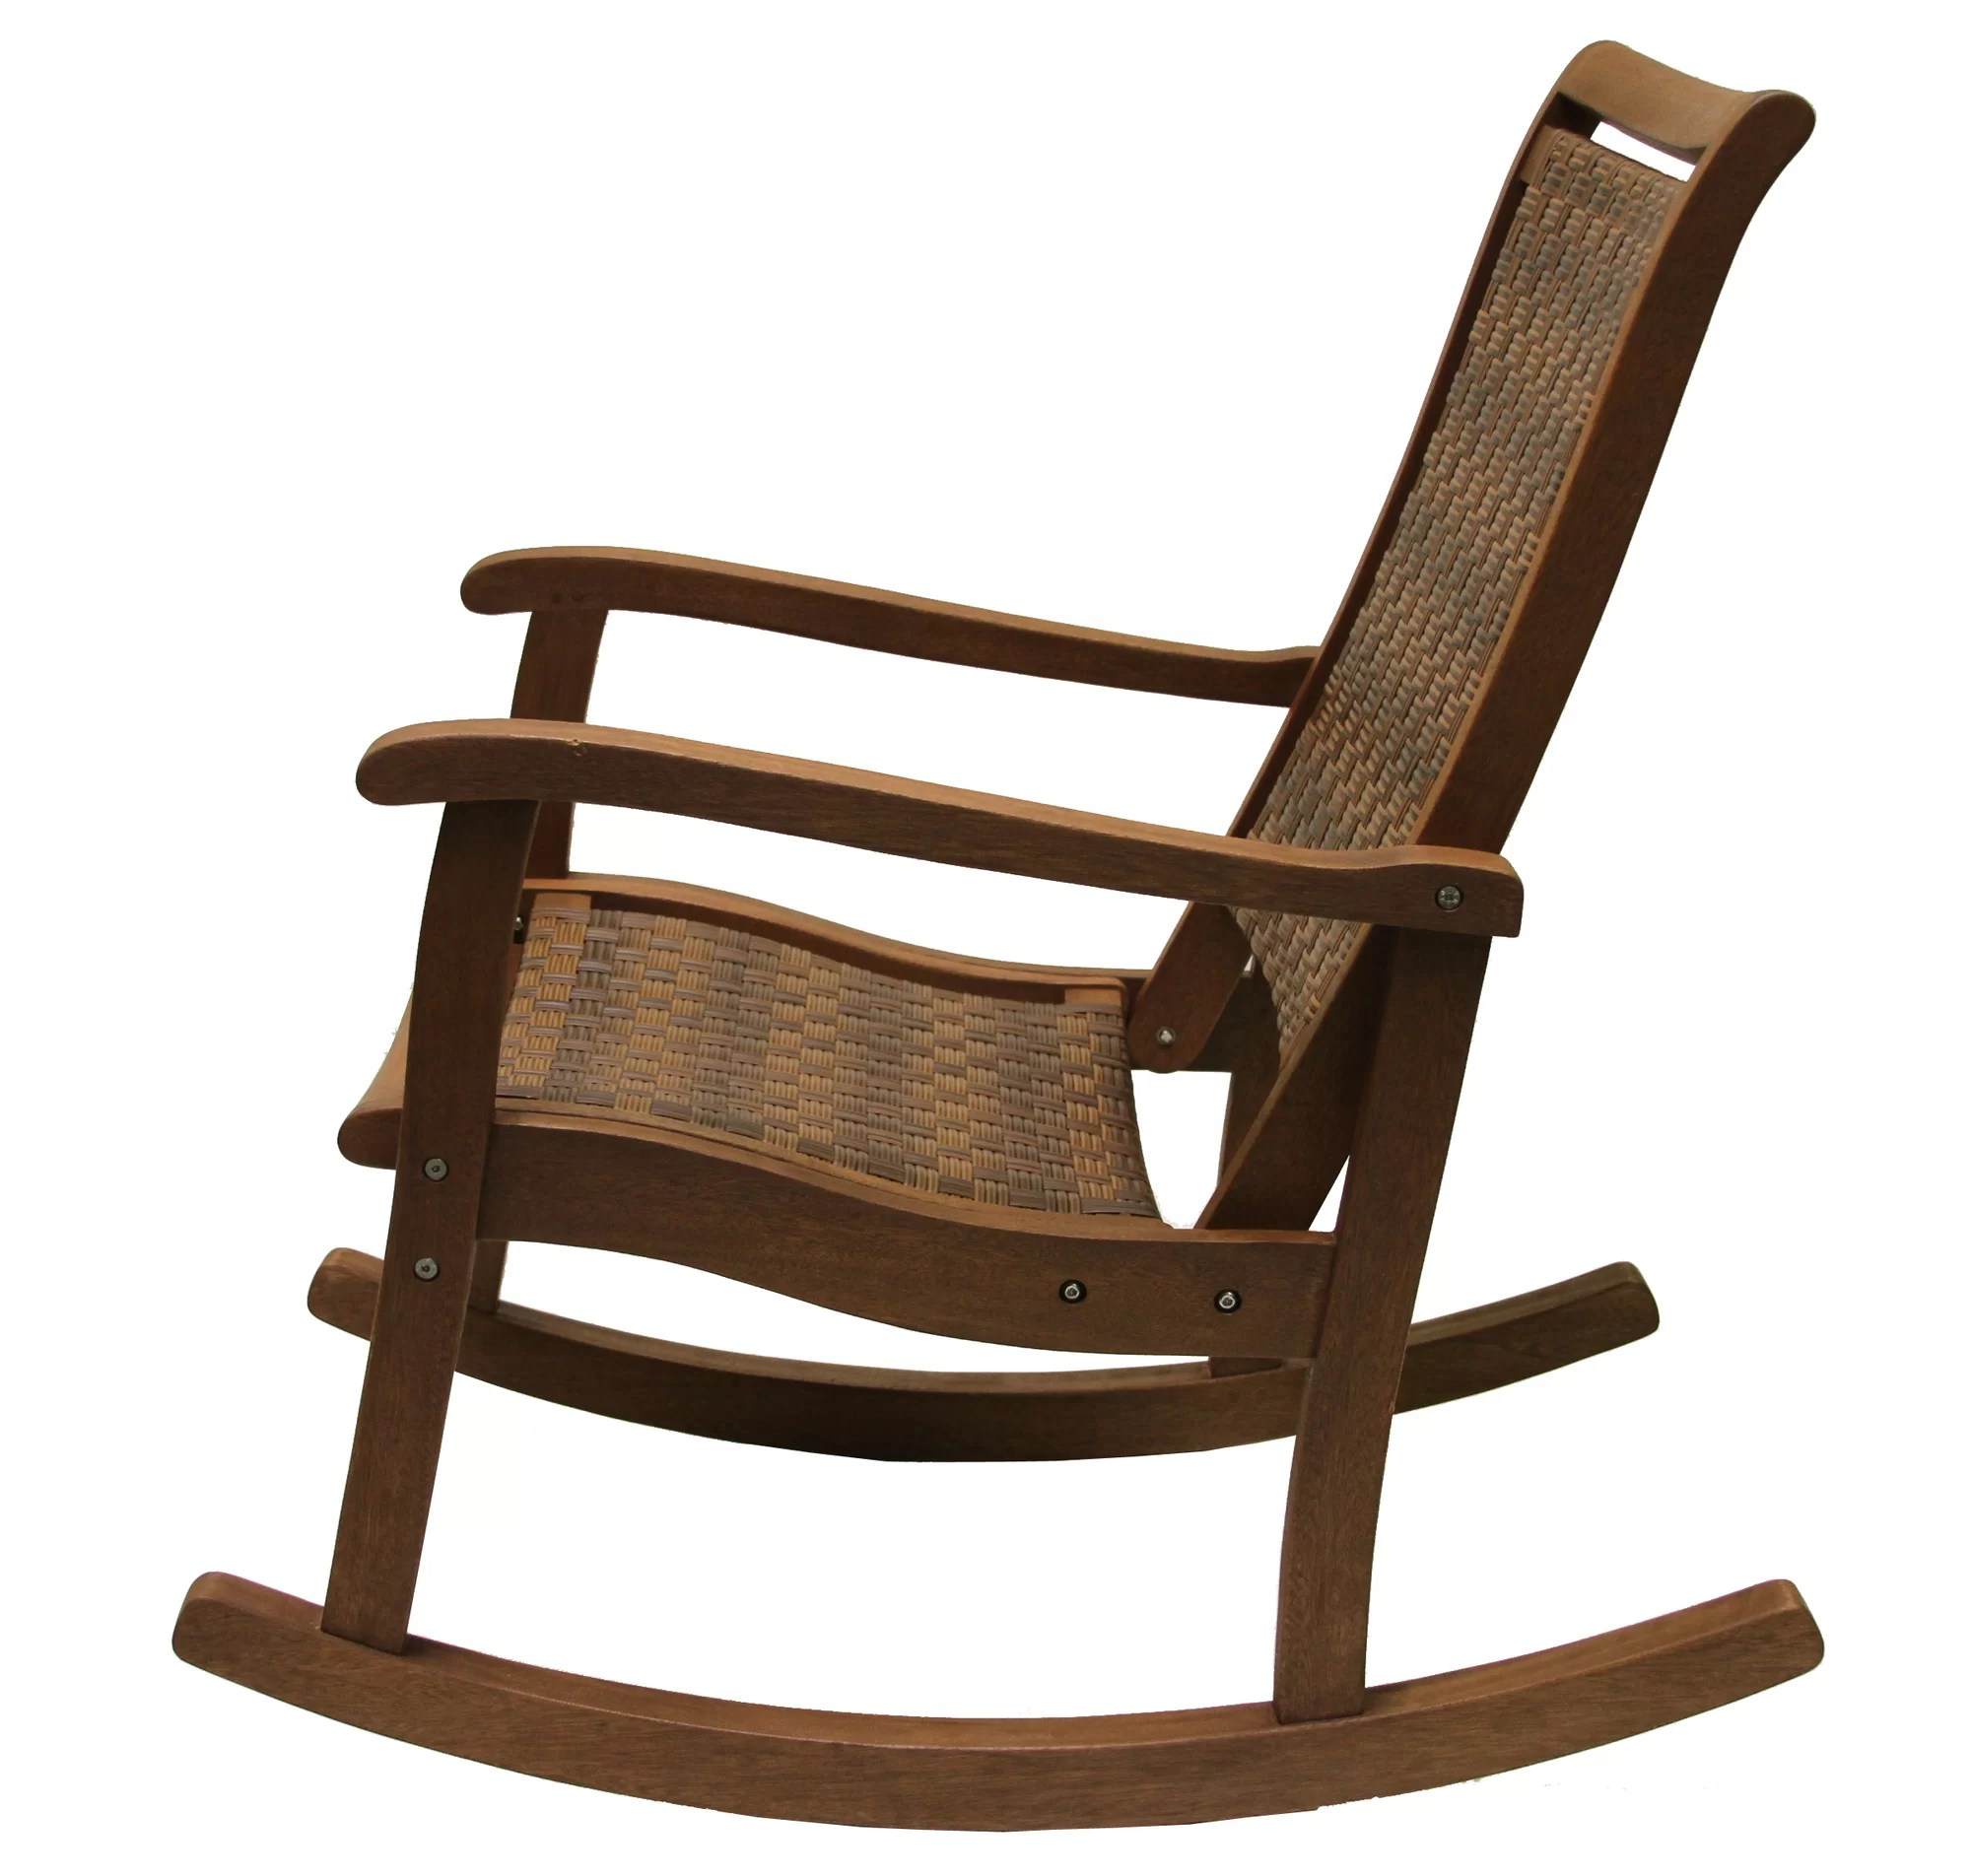 Indoor Wicker Rocking Chair Outdoor Interiors Resin Wicker And Eucalyptus Rocker Chair